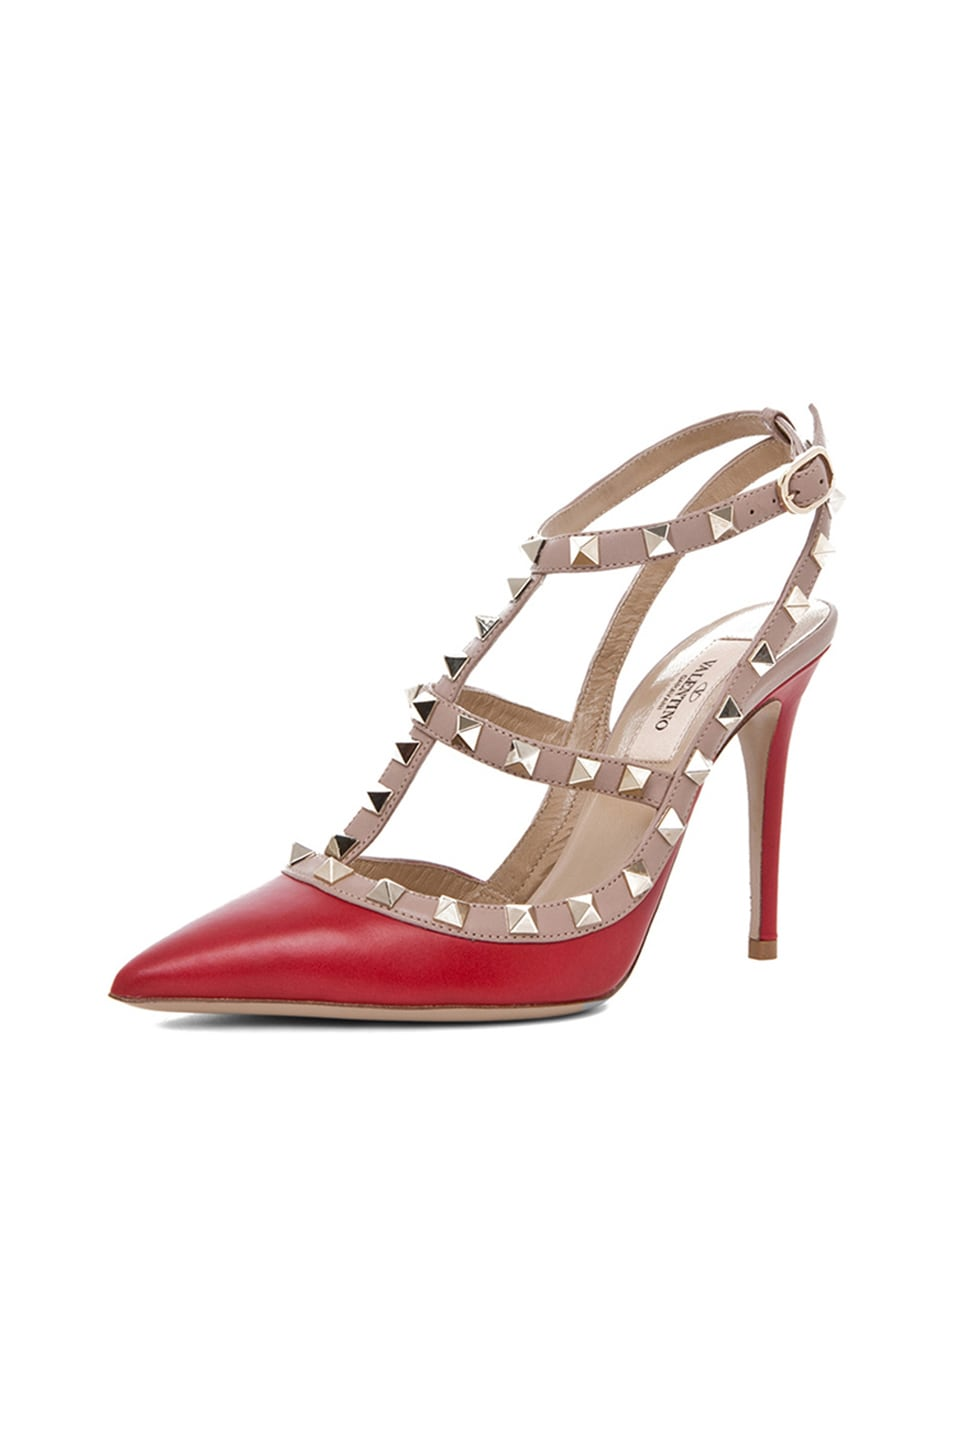 Image 2 of Valentino Rockstud Leather Slingbacks T.100 in Red